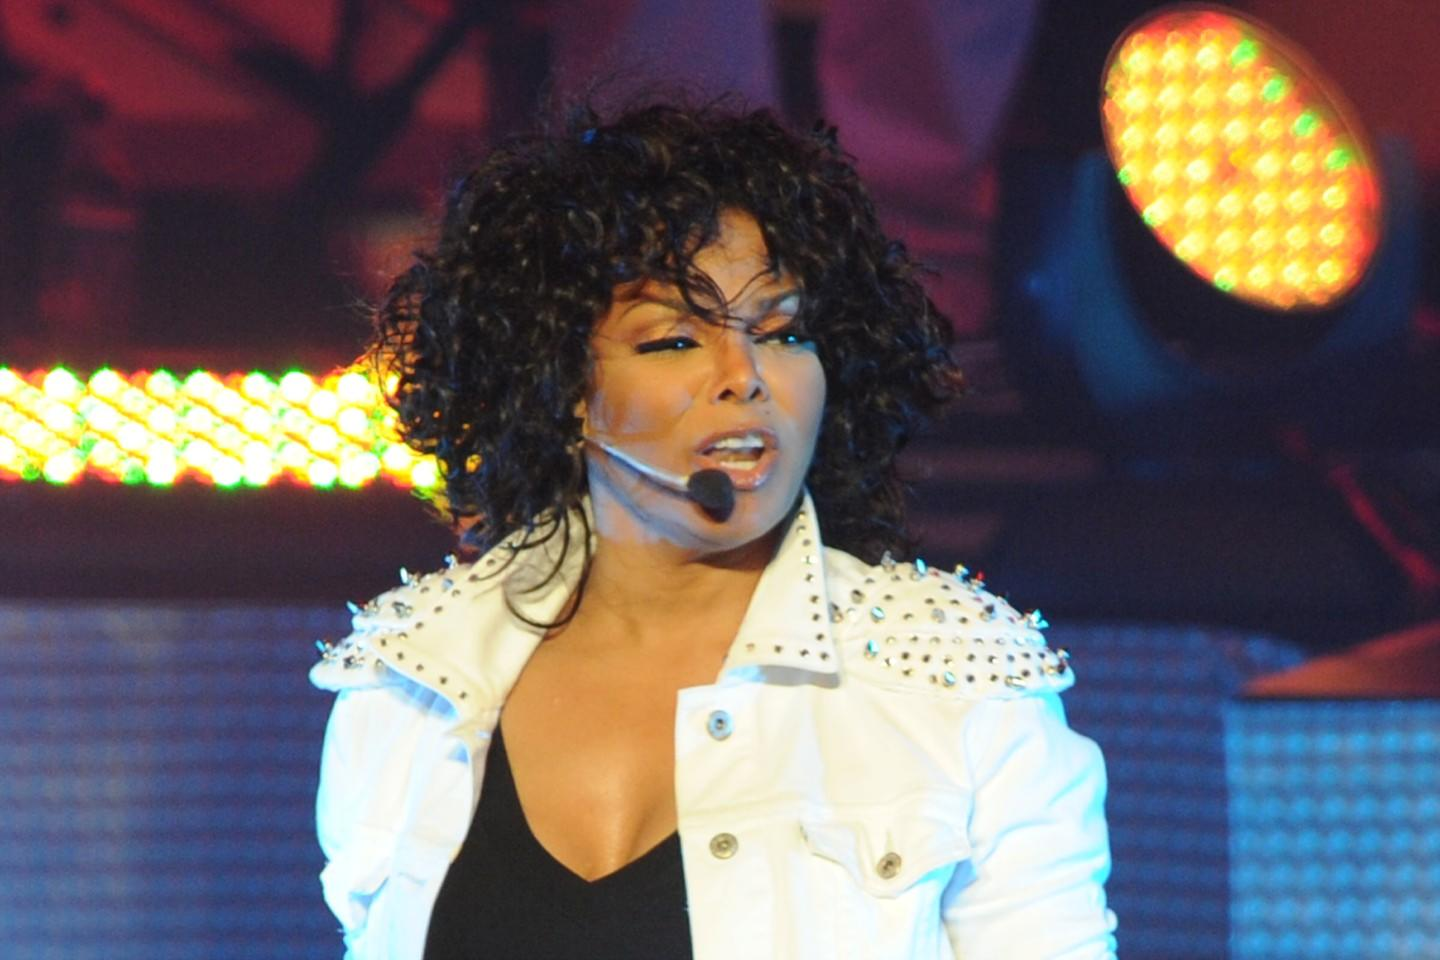 Janet Jackson 2020 Tour JaJackson Tickets | JaJackson Tour Dates 2019 and Concert